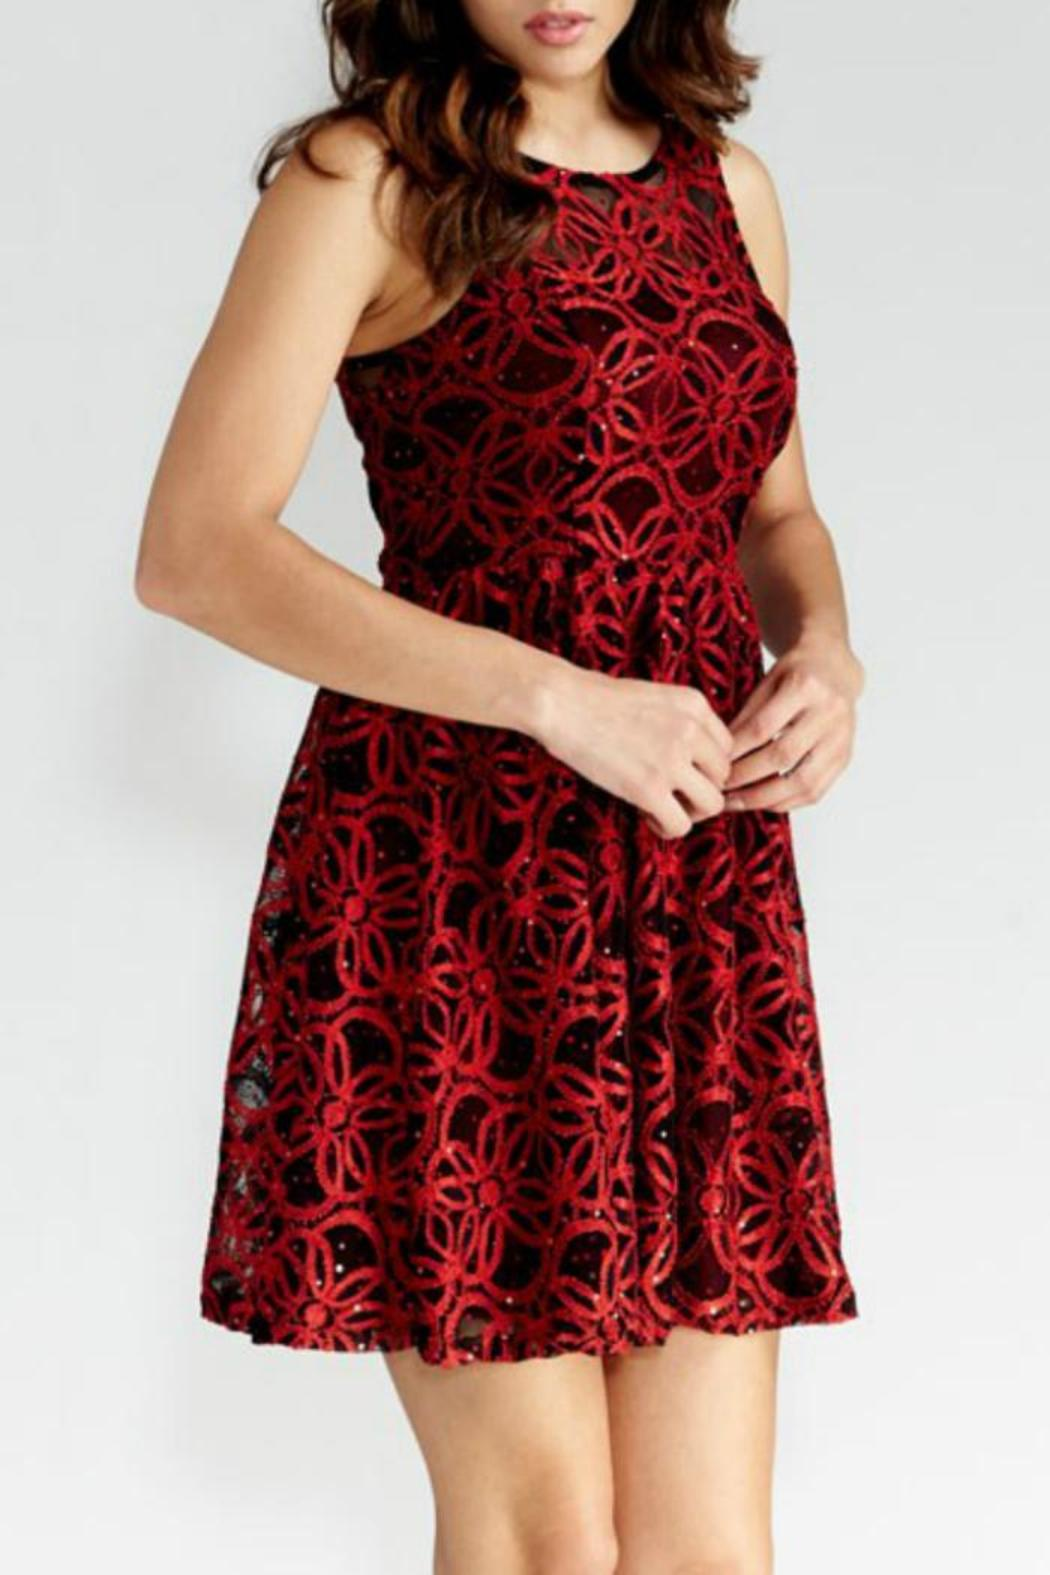 GIBIU Red-N-Refined Dress - Side Cropped Image